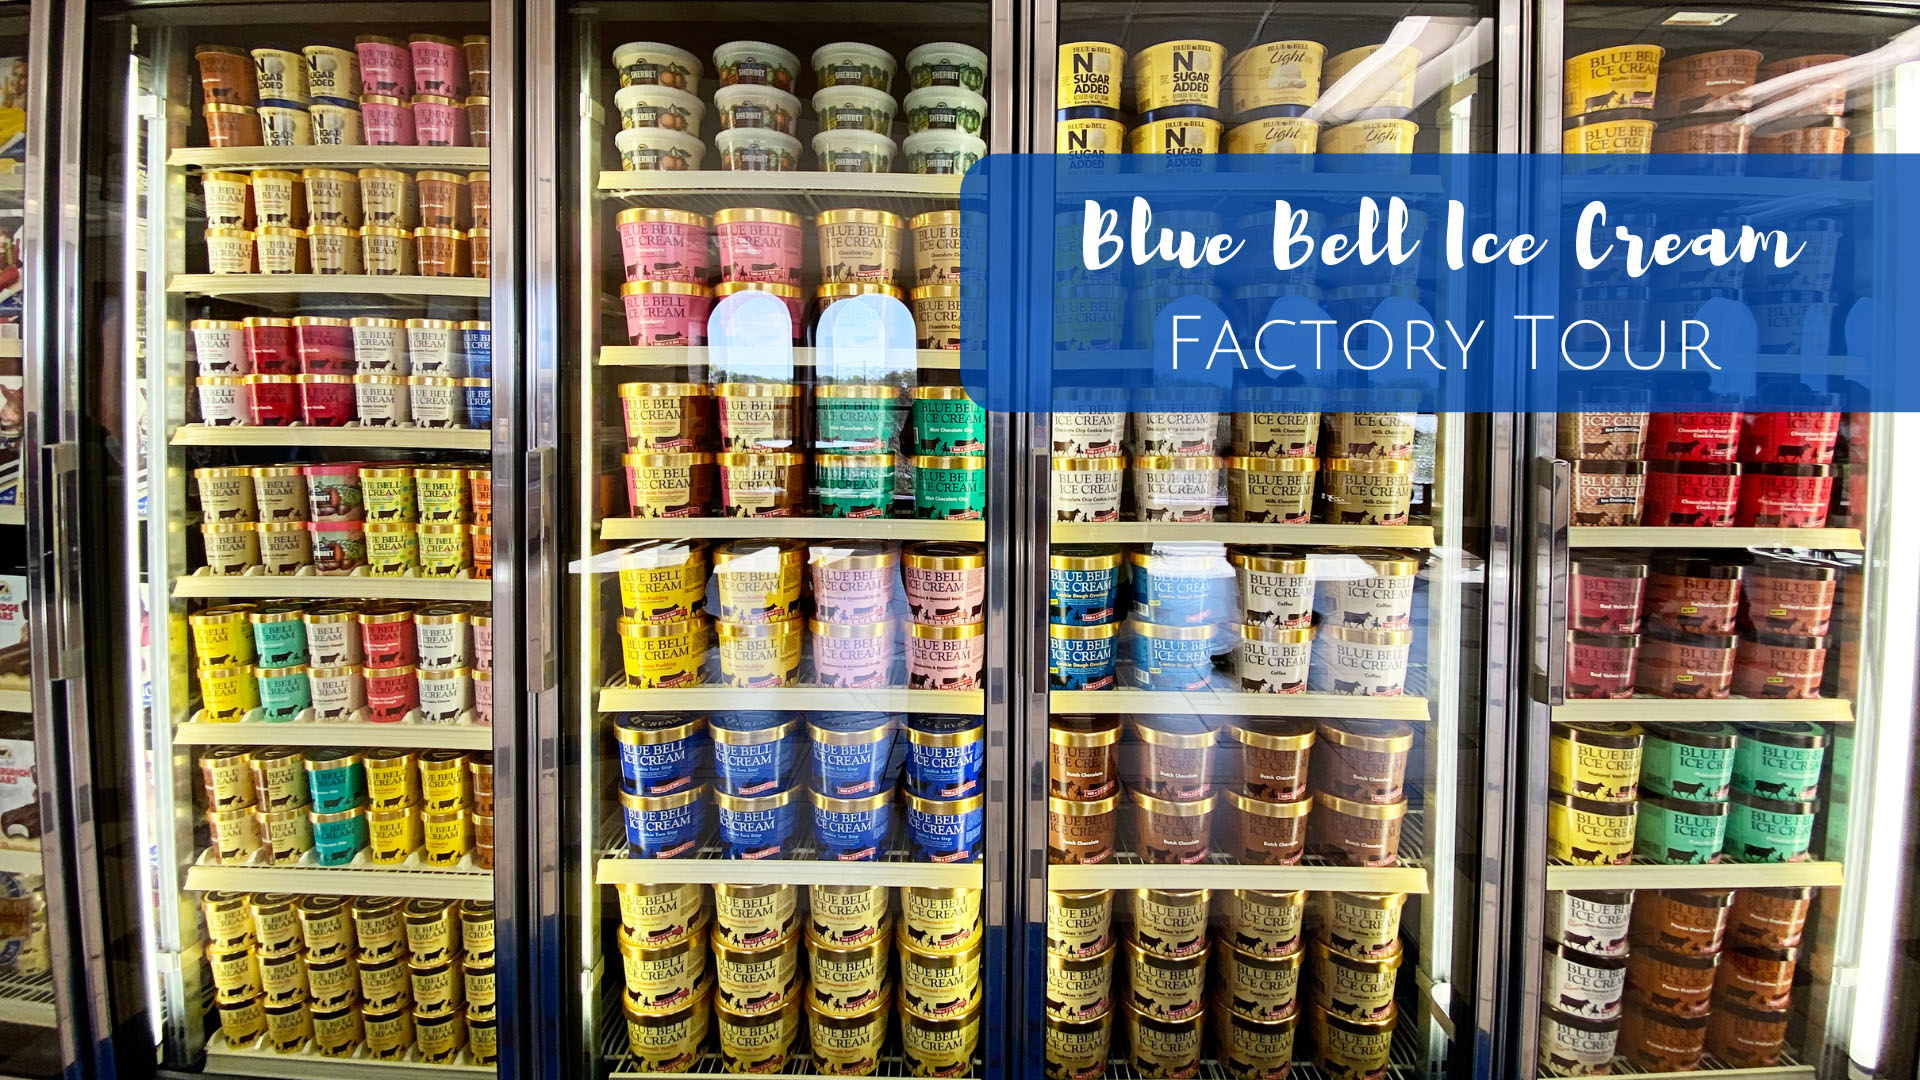 Blue Bell Ice Cream factory tour and tasting in Brenham, Texas